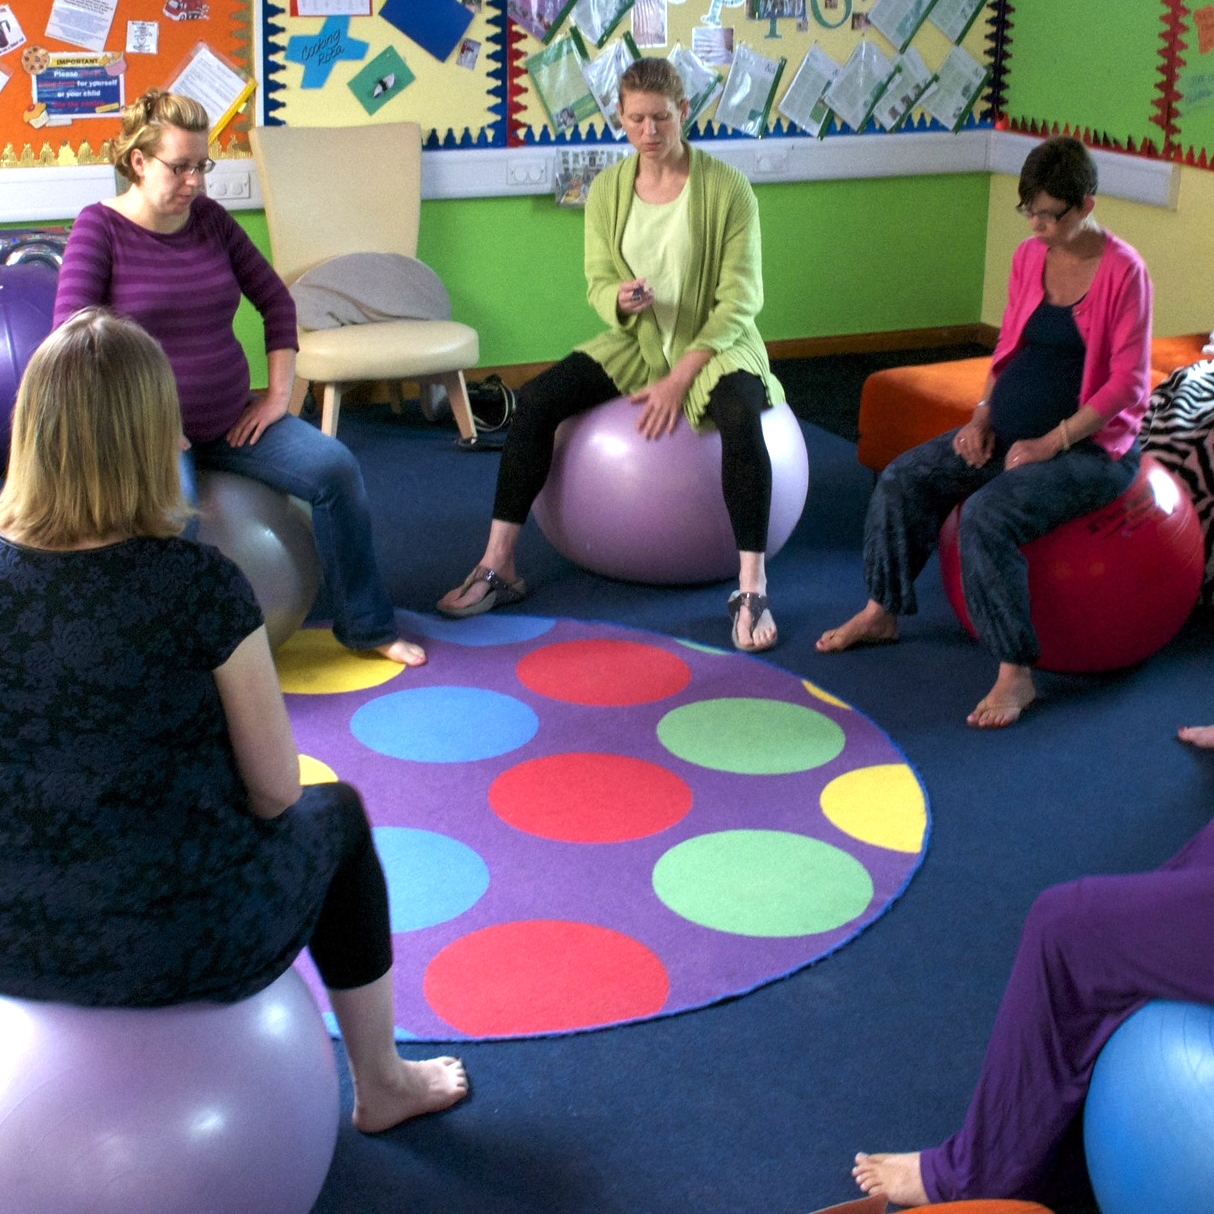 Fridays 9.30 - 10.30 Carterton family centre, tuesdays 1-2 Cotswold Birth Centre Chipping Norton